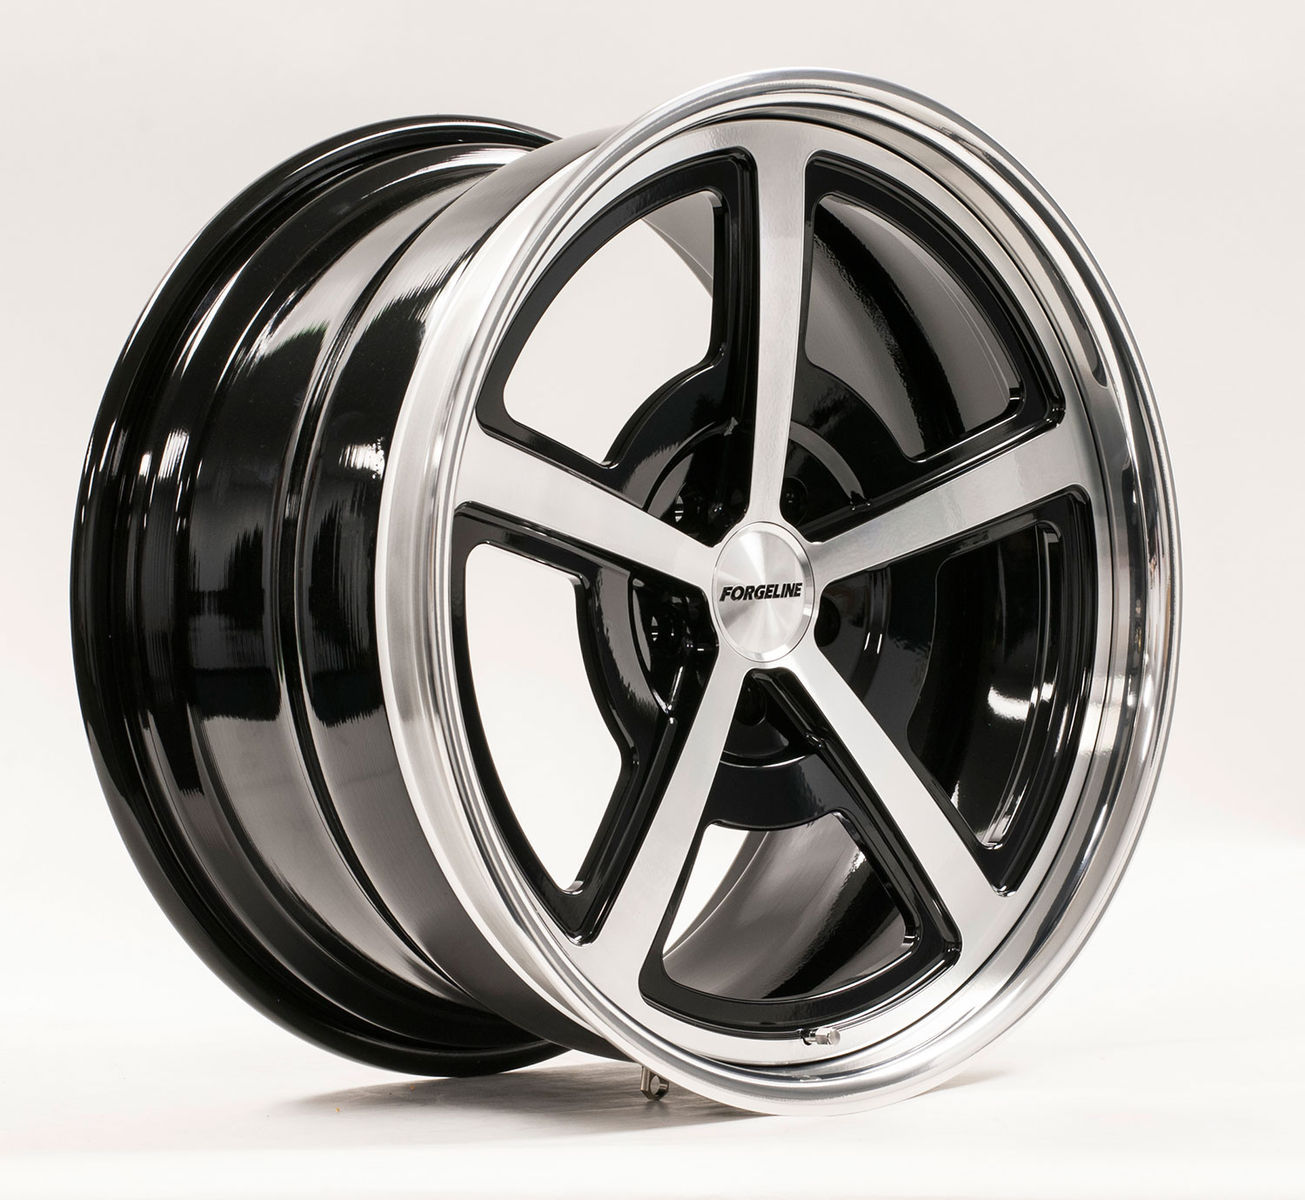 | Forgeline Heritage Series FL500 Wheel in Gloss Black/HTM